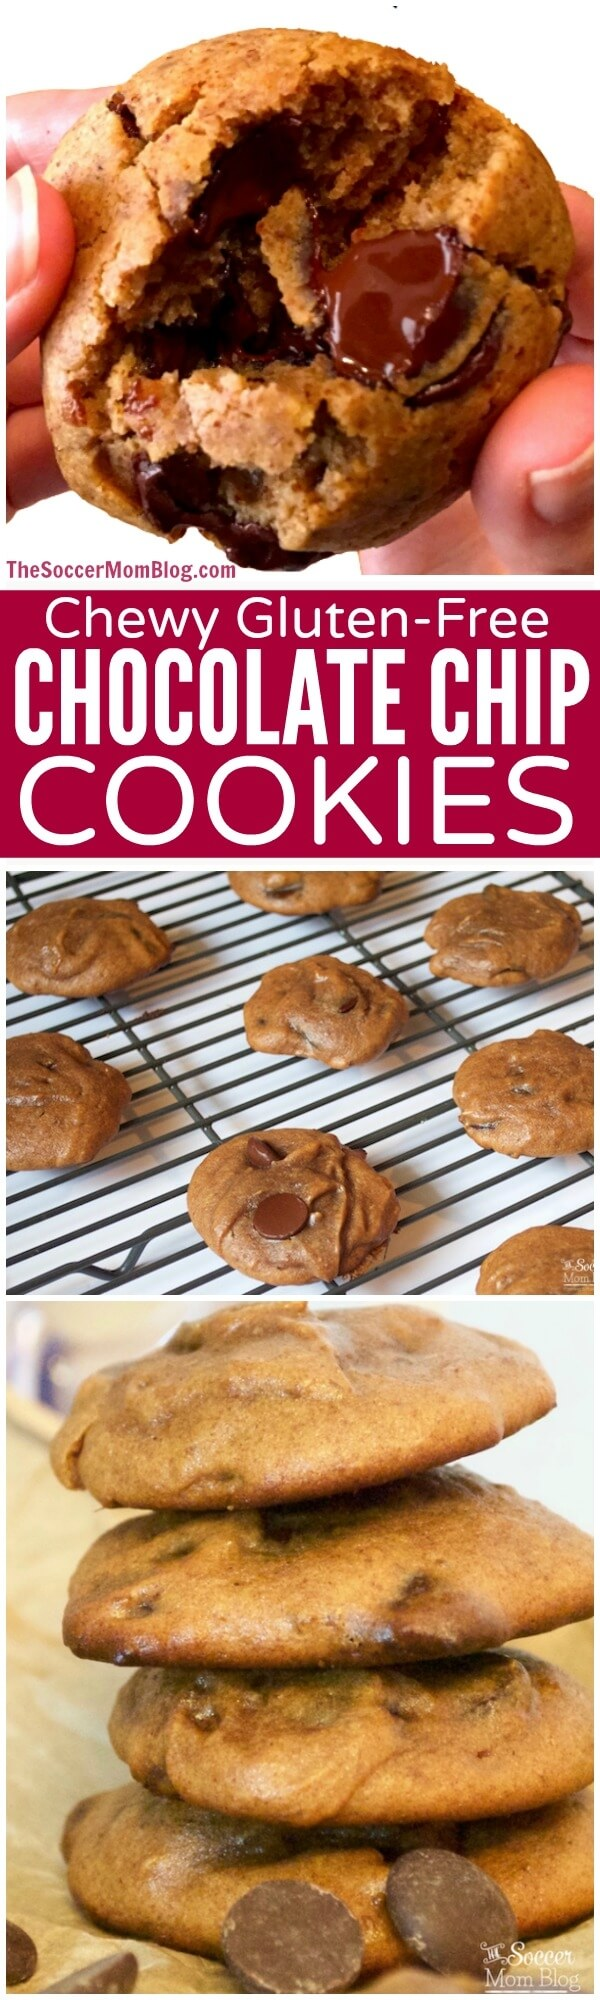 These gluten free chocolate chip cookies are so rich, chewy, and chocolate-y that you'd never guess they're actually healthy!